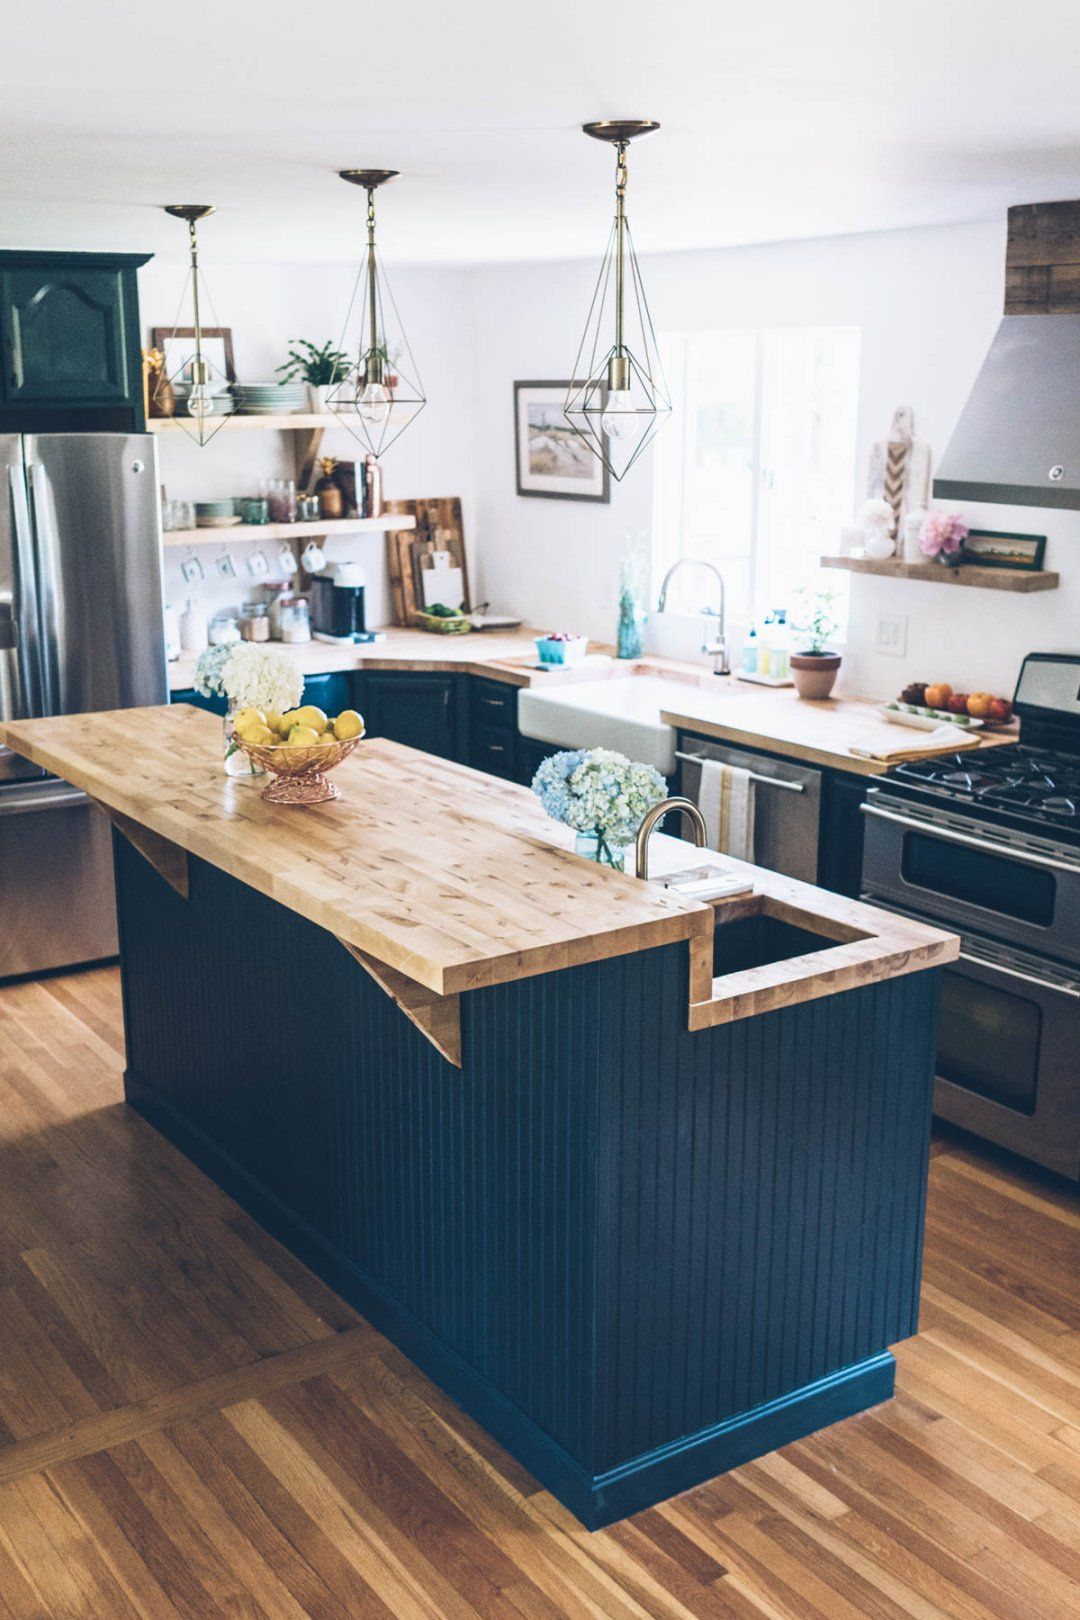 Jess kirbys kitchen renovation features a new chalk painted island brass pendant lights and butcher block counter tops